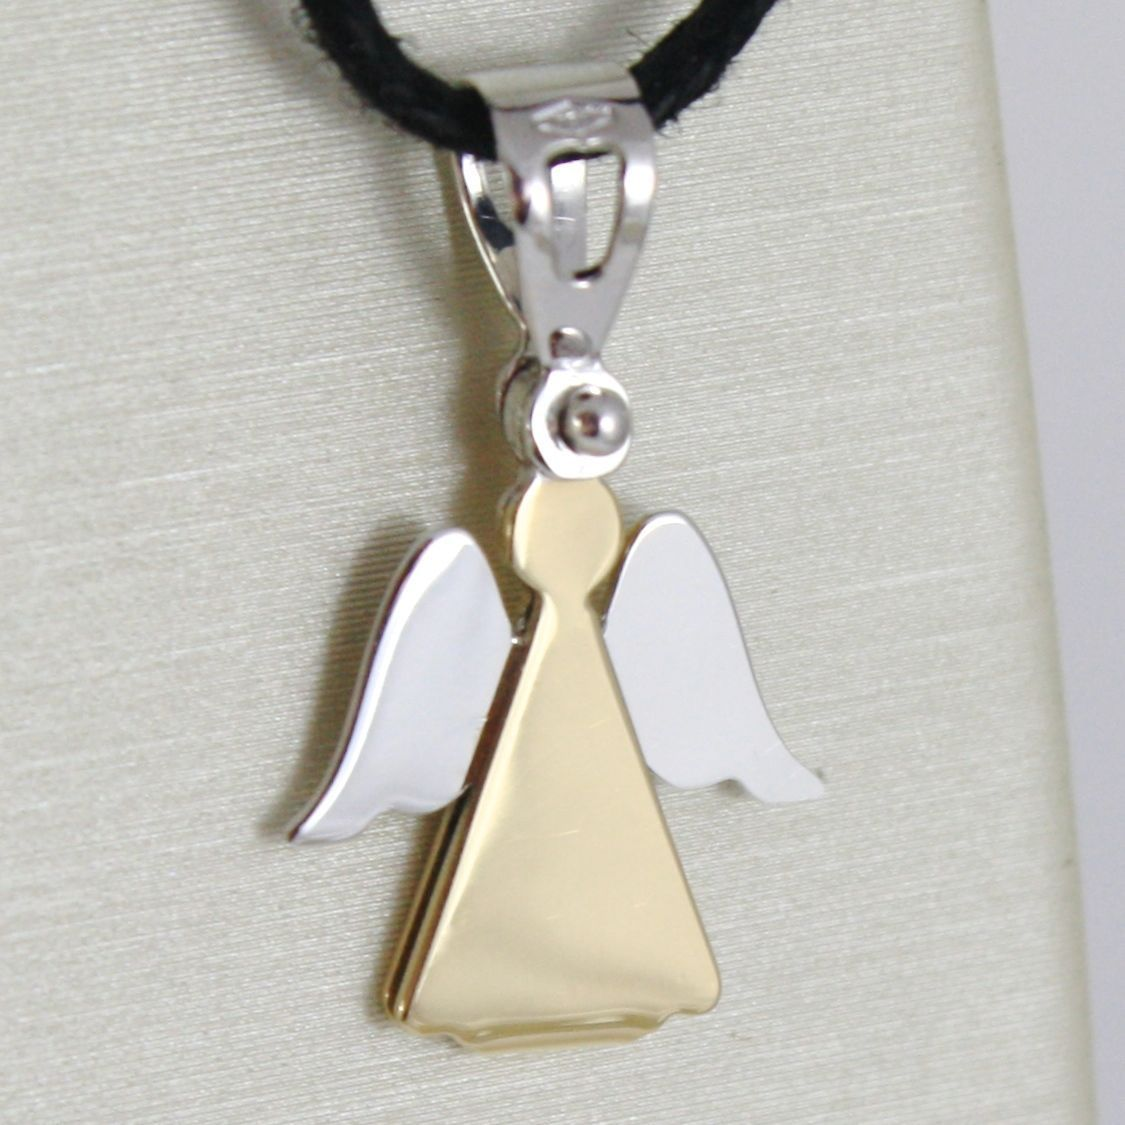 18K YELLOW AND WHITE GOLD PENDANT WITH LUSTER STYLIZED ANGEL MADE IN ITALY 0.80